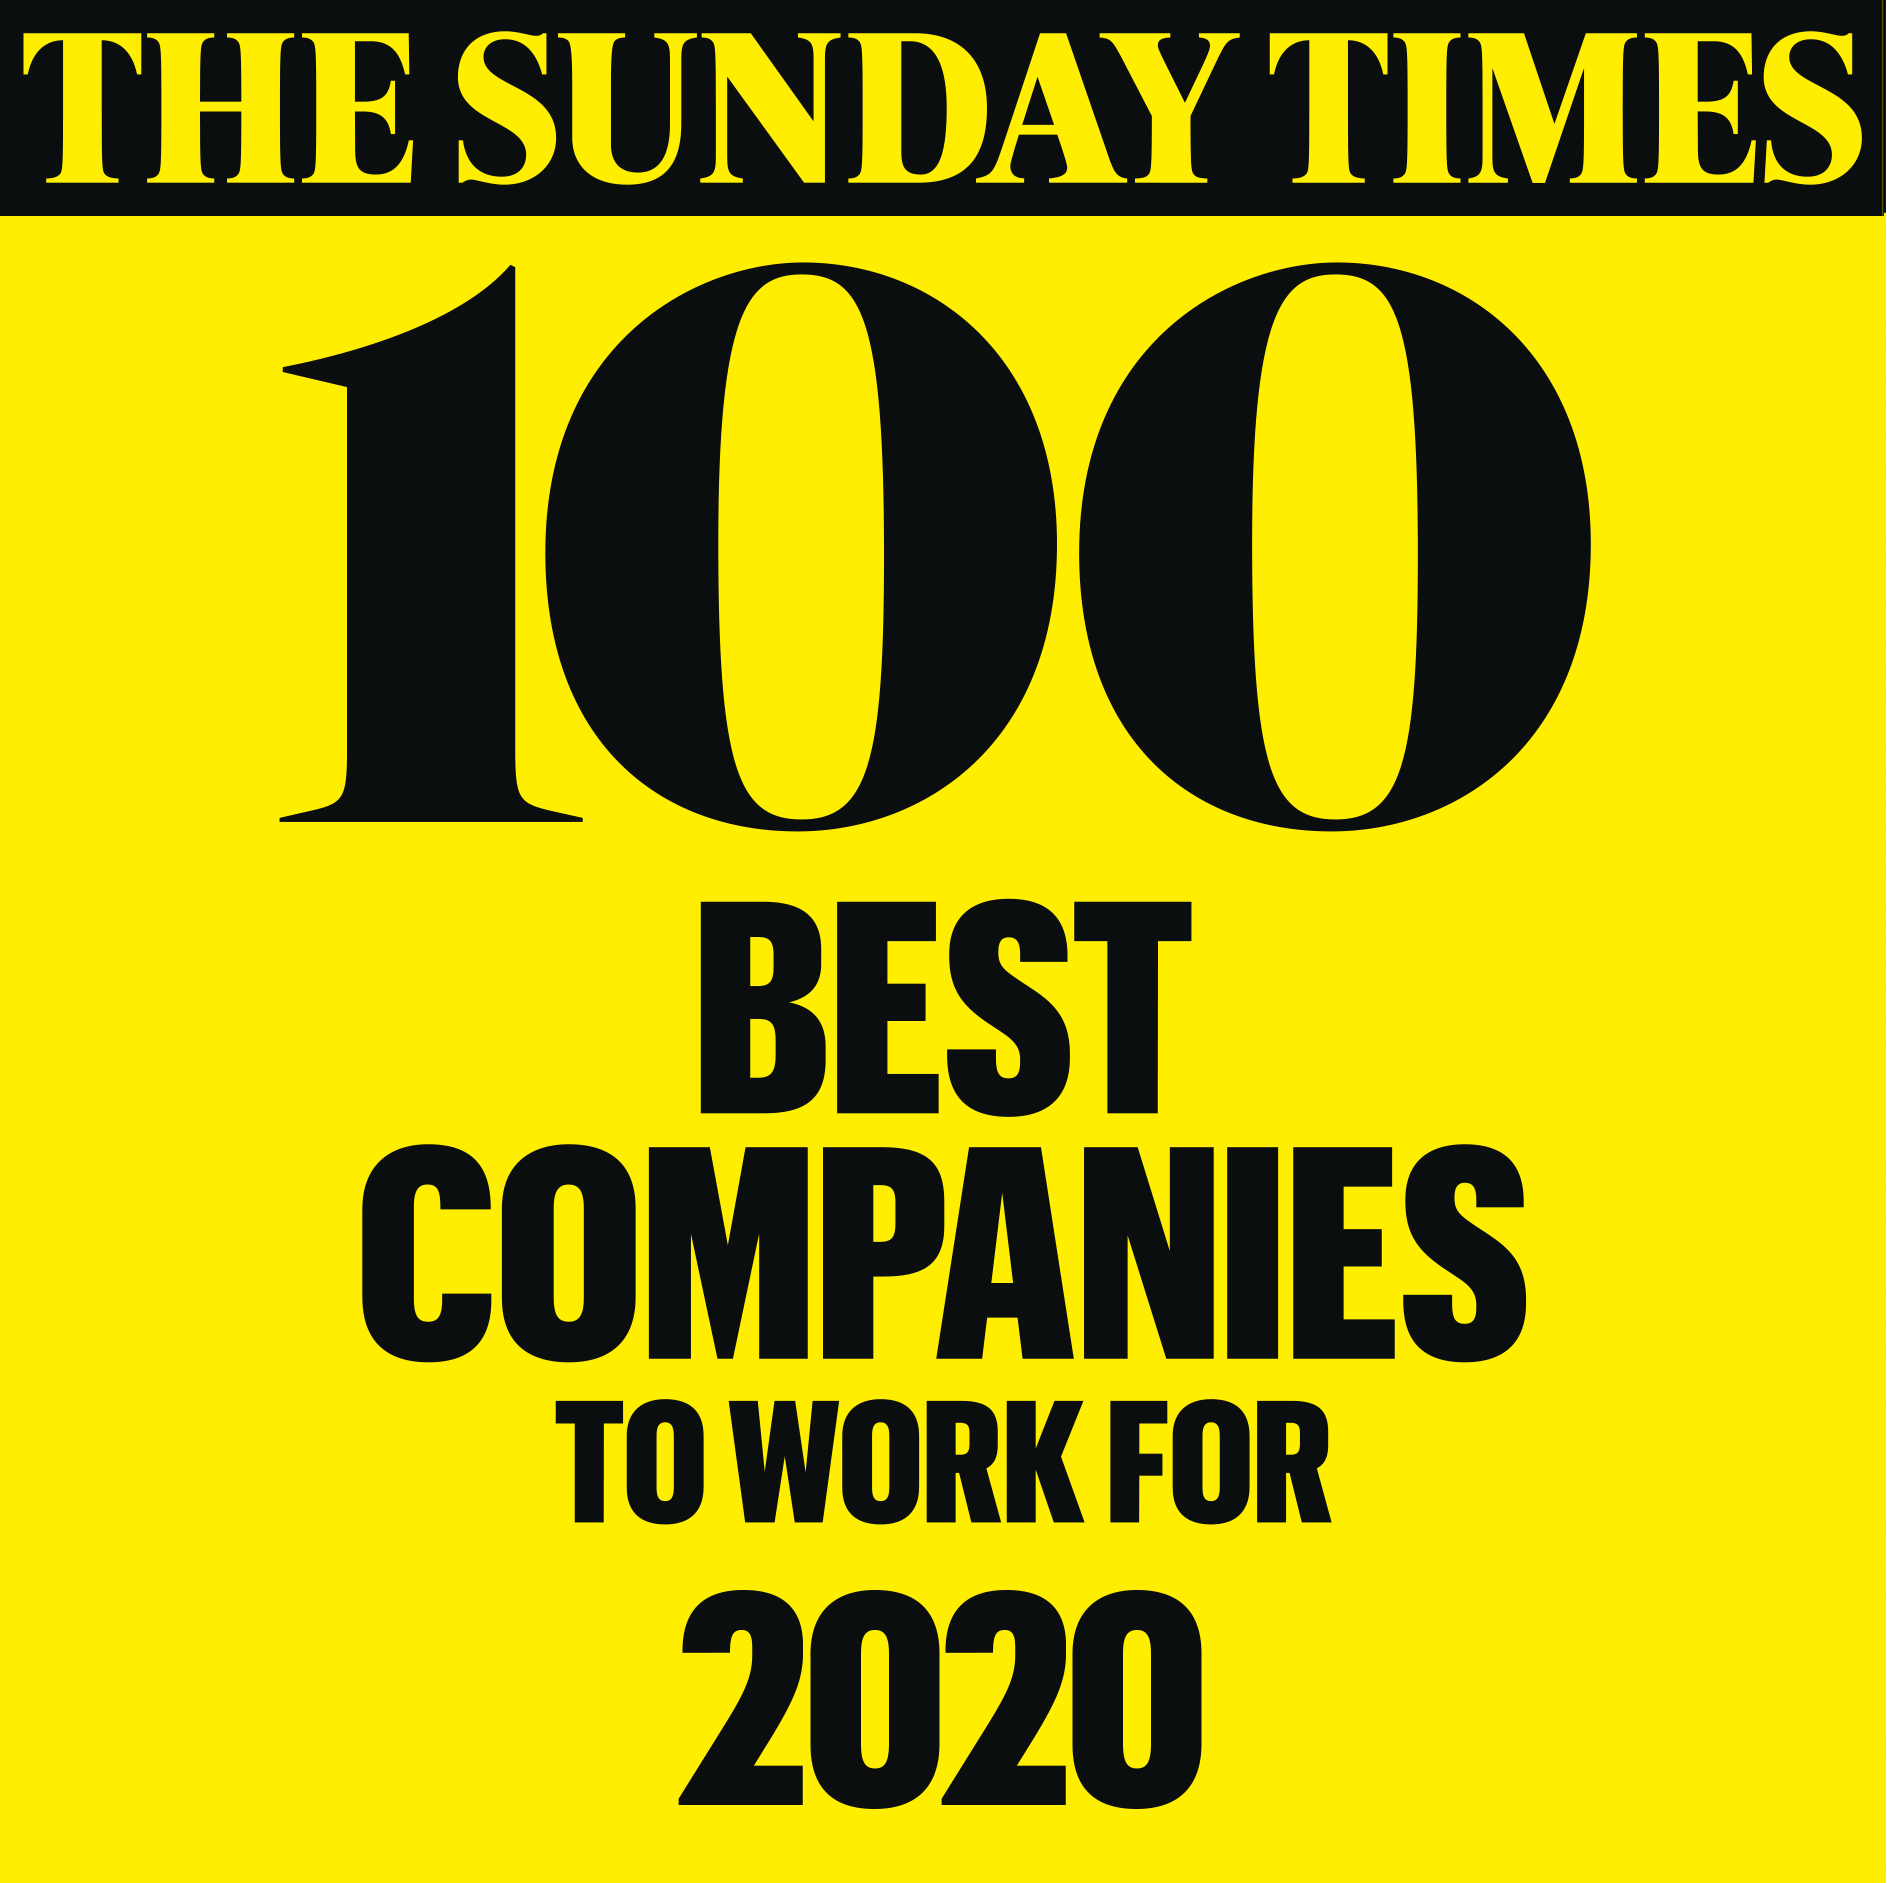 The Sunday Times Best Companies to Work For 2020